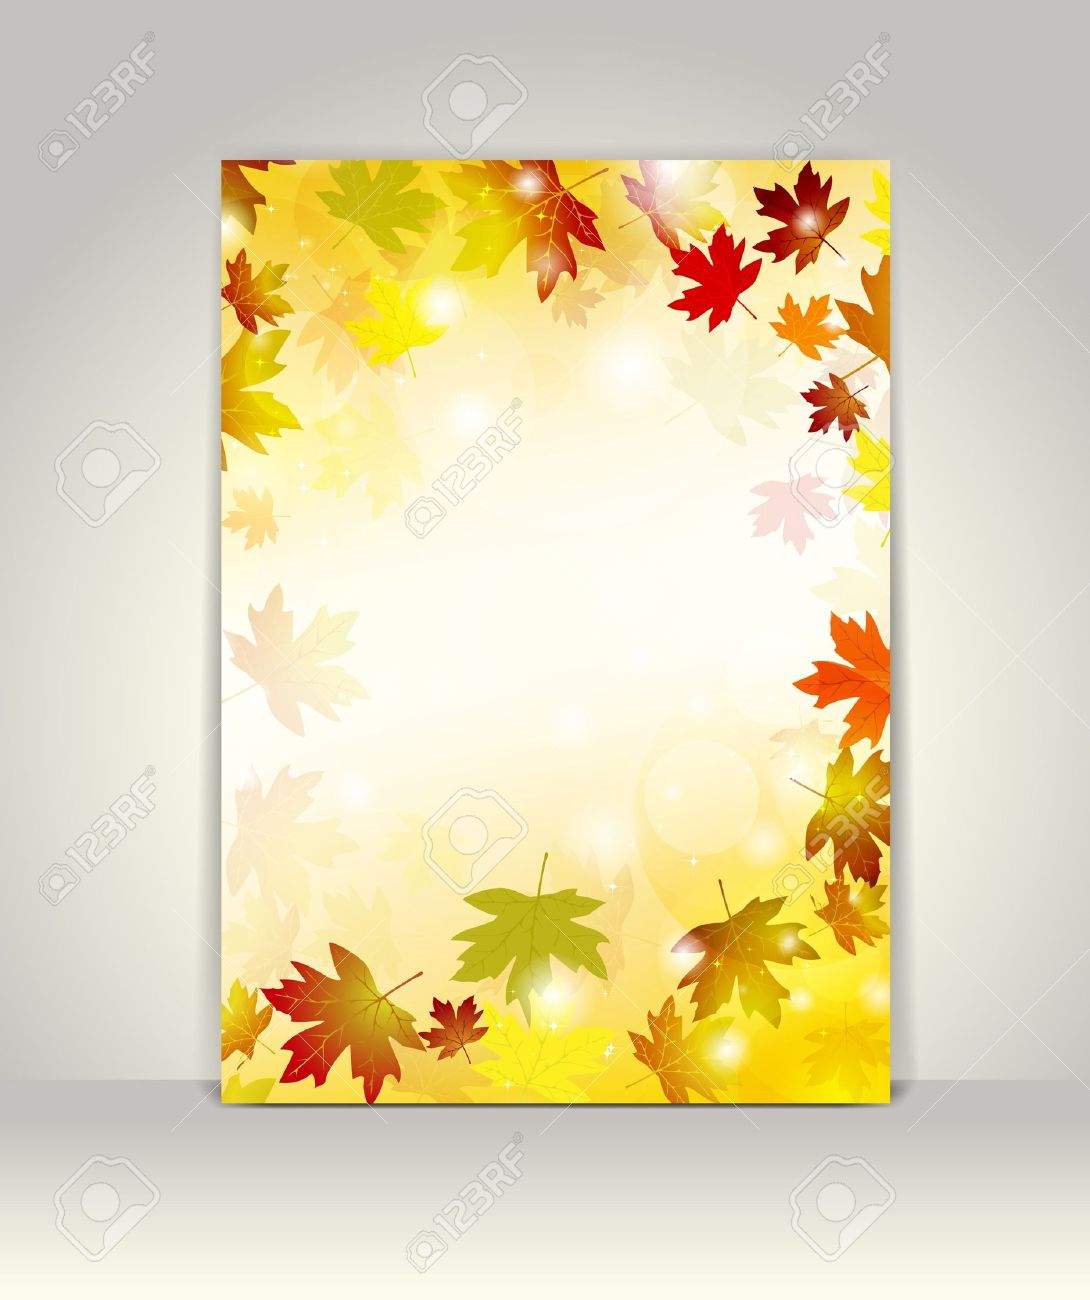 Business Brochure Design Template, Autumn Background Royalty Free ...